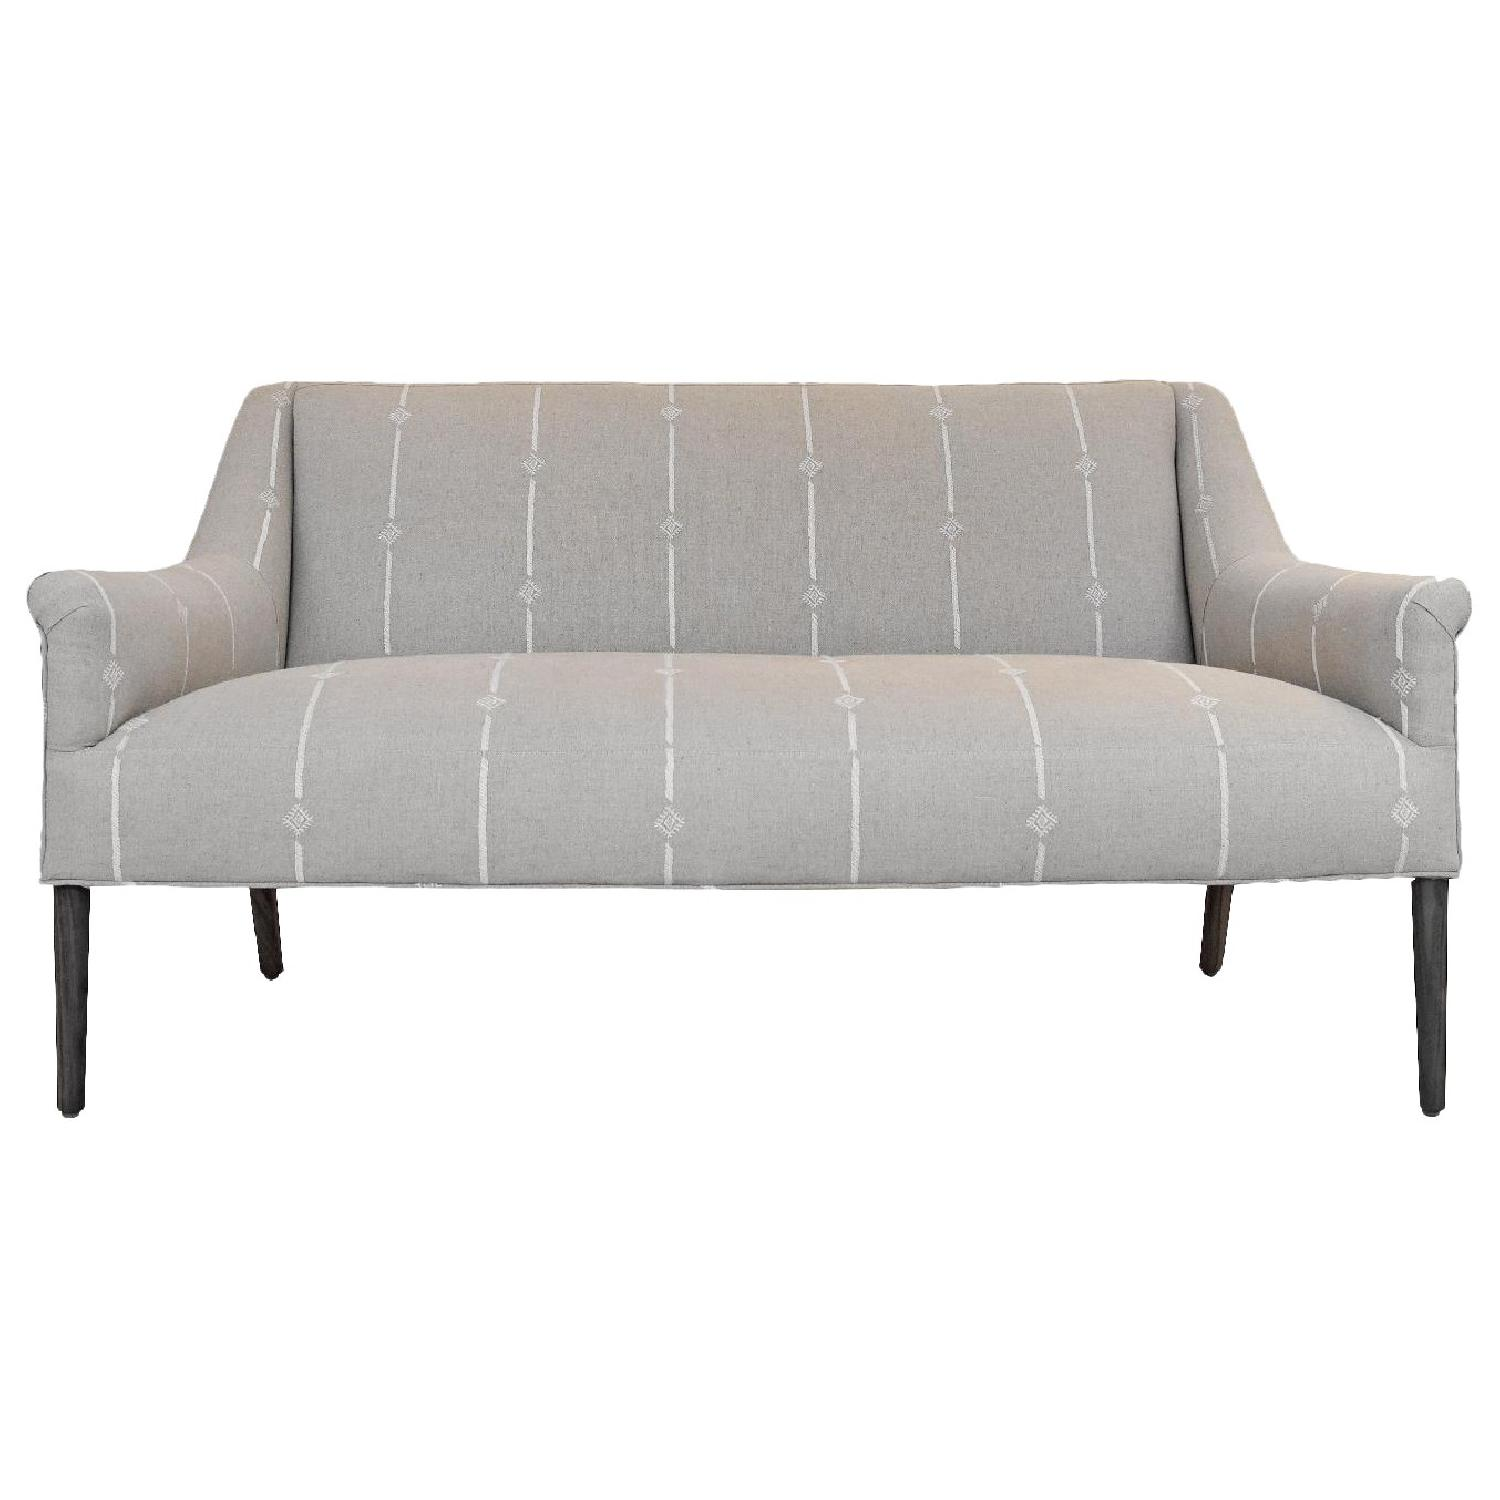 Cisco Brothers Piper Loveseat